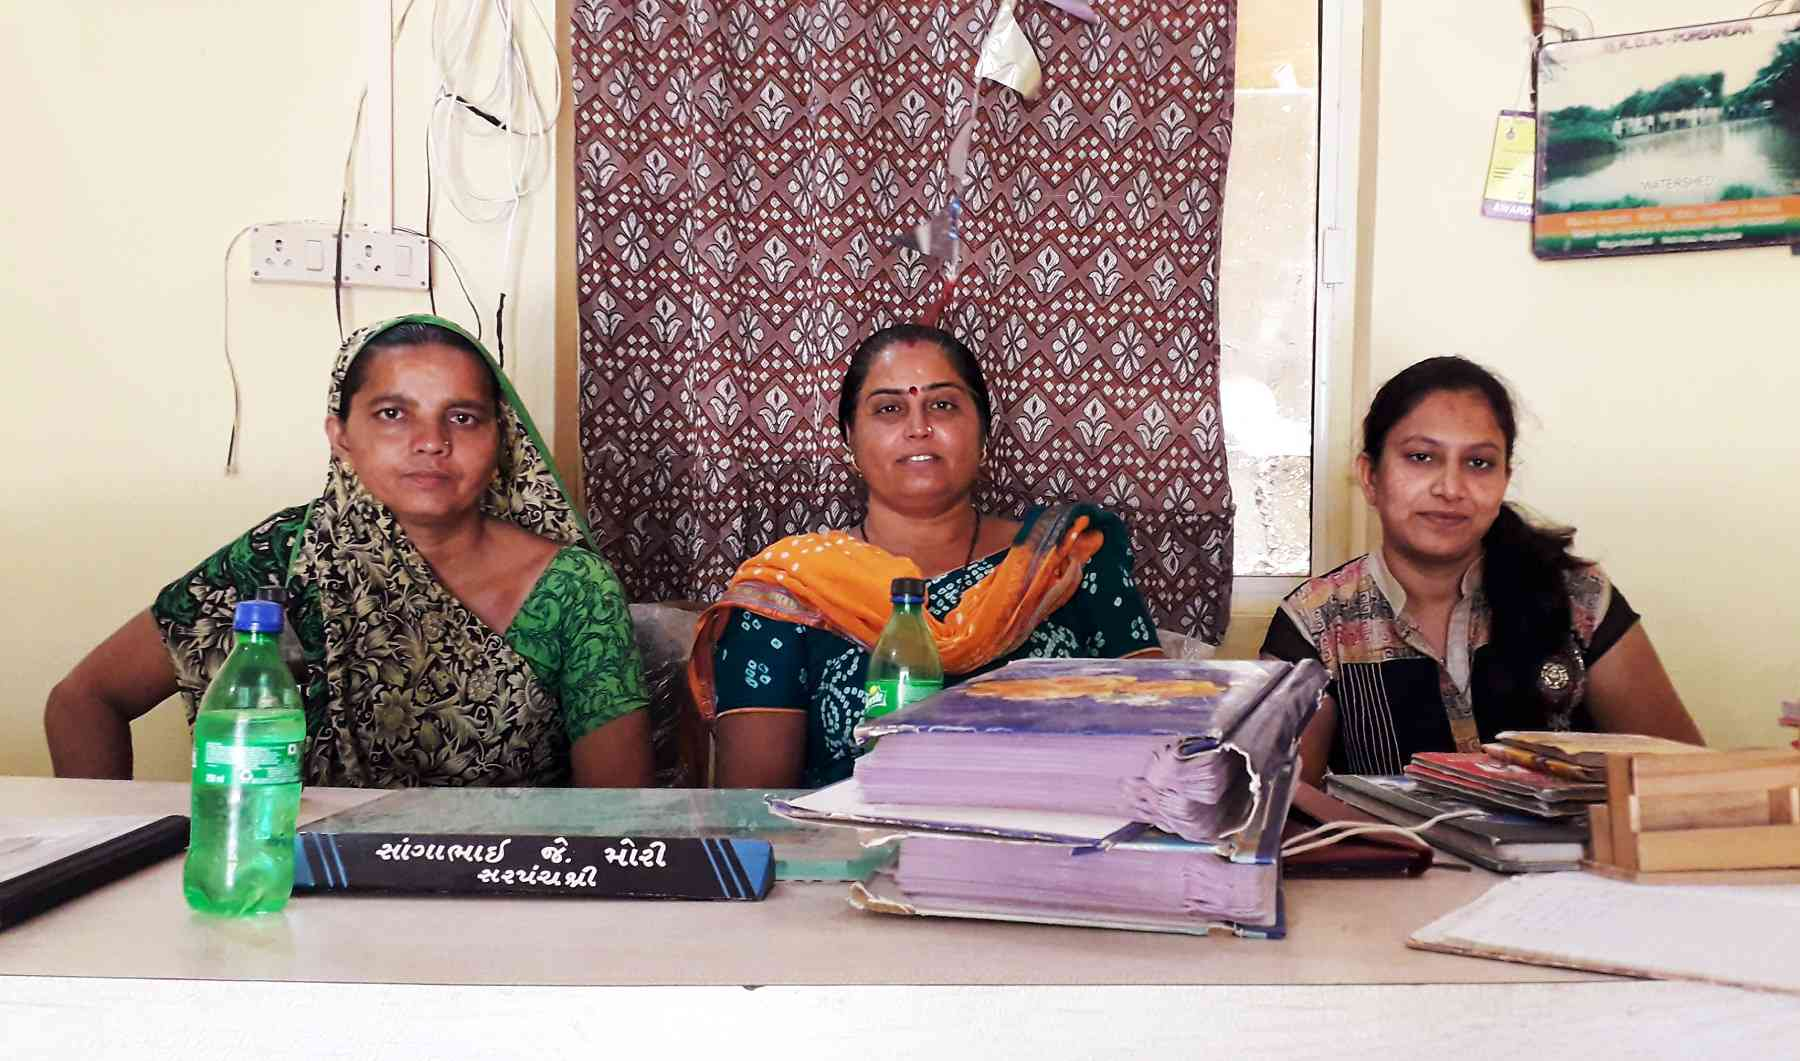 Rana Bordi's women panchayat members (left to right): Amina Isub, Laxmiben Mori and Bhavna Vara. The nameplate on the sarpanch's desk has Laxmiben's husband's name on it. Photo: Aarefa Johari